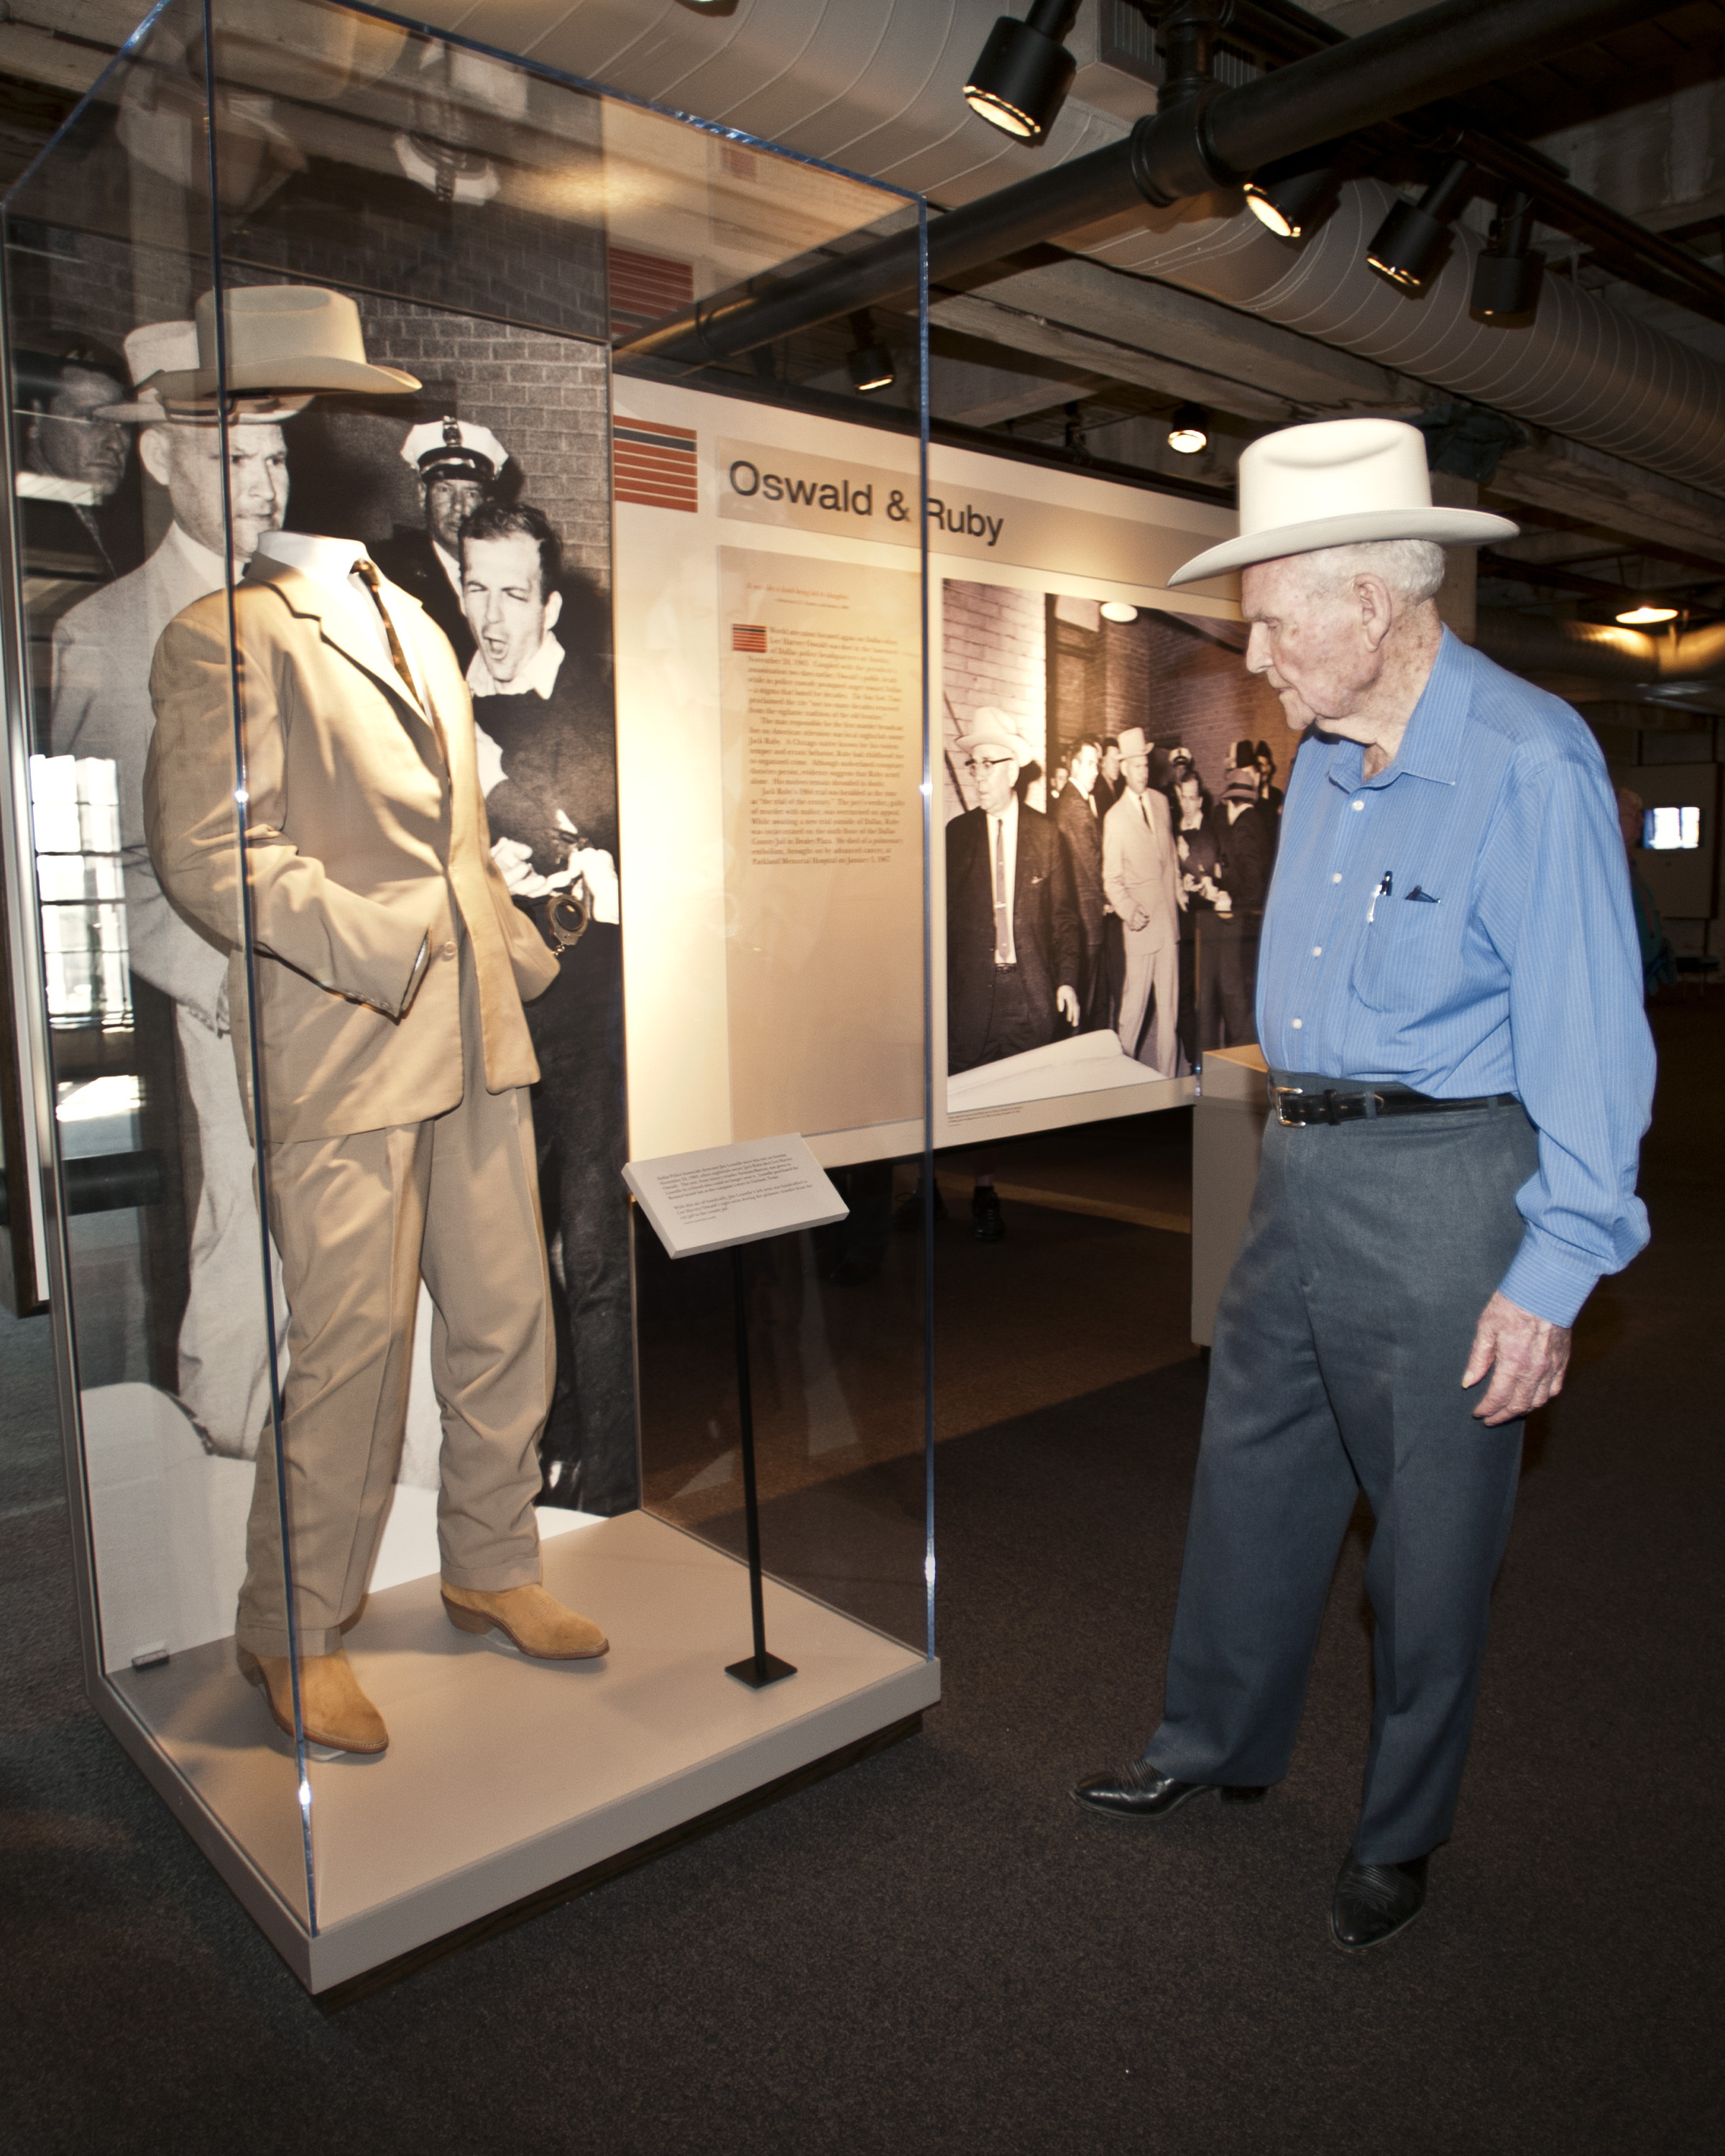 Marvelous The Sixth Floor Museum At Dealey Plaza Adds Iconic Artifacts, Enhances Core  Exhibit In Preparation For 50th Anniversary Of President John F. Kennedyu0027s  ...